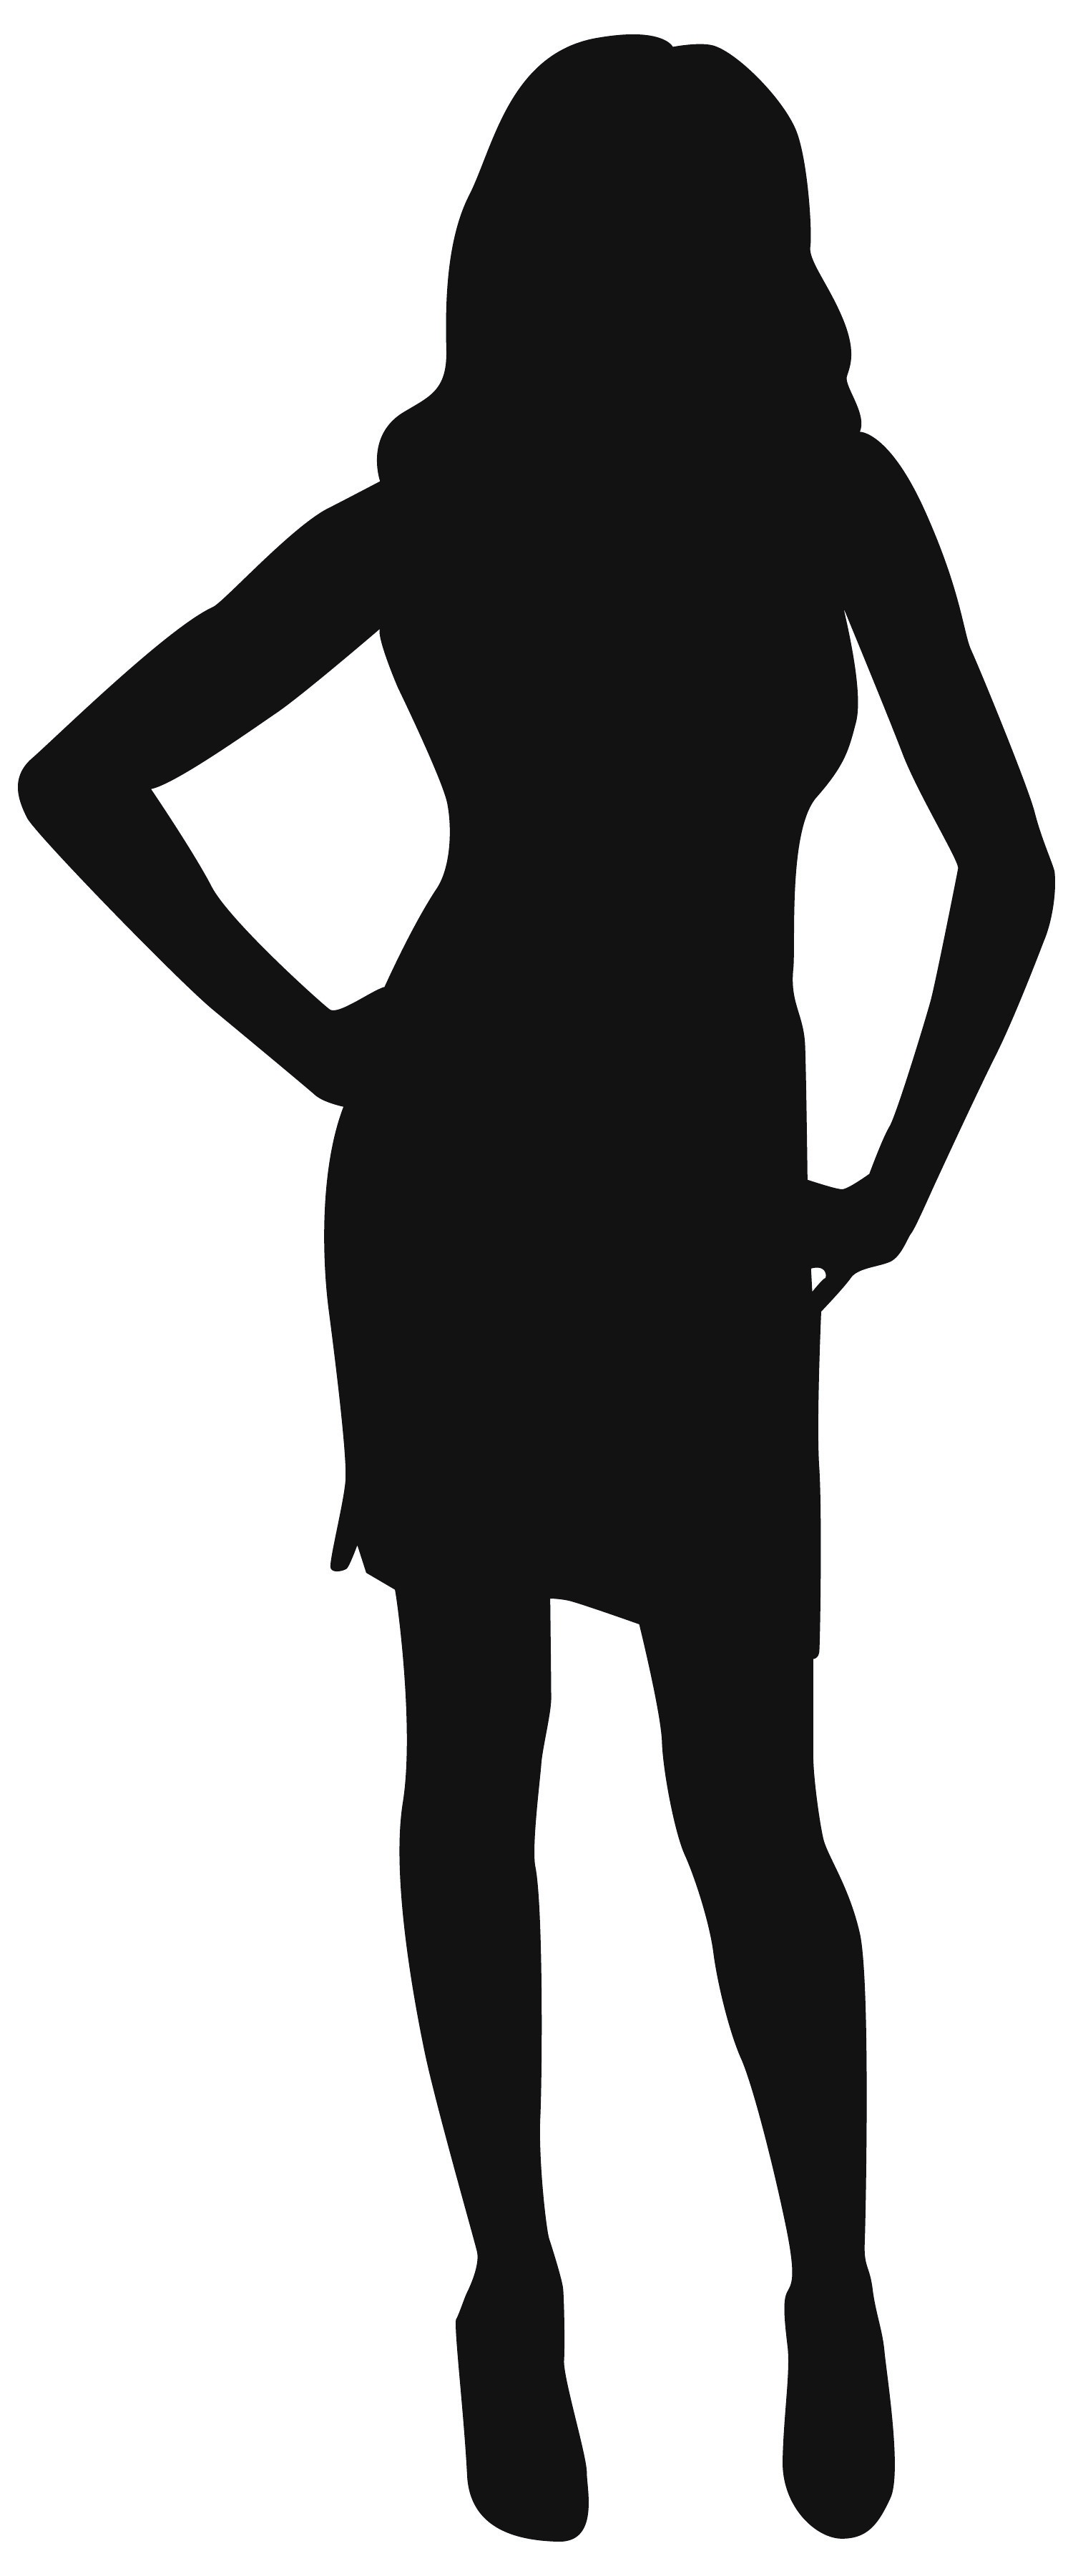 Woman standing silhouette with dress.